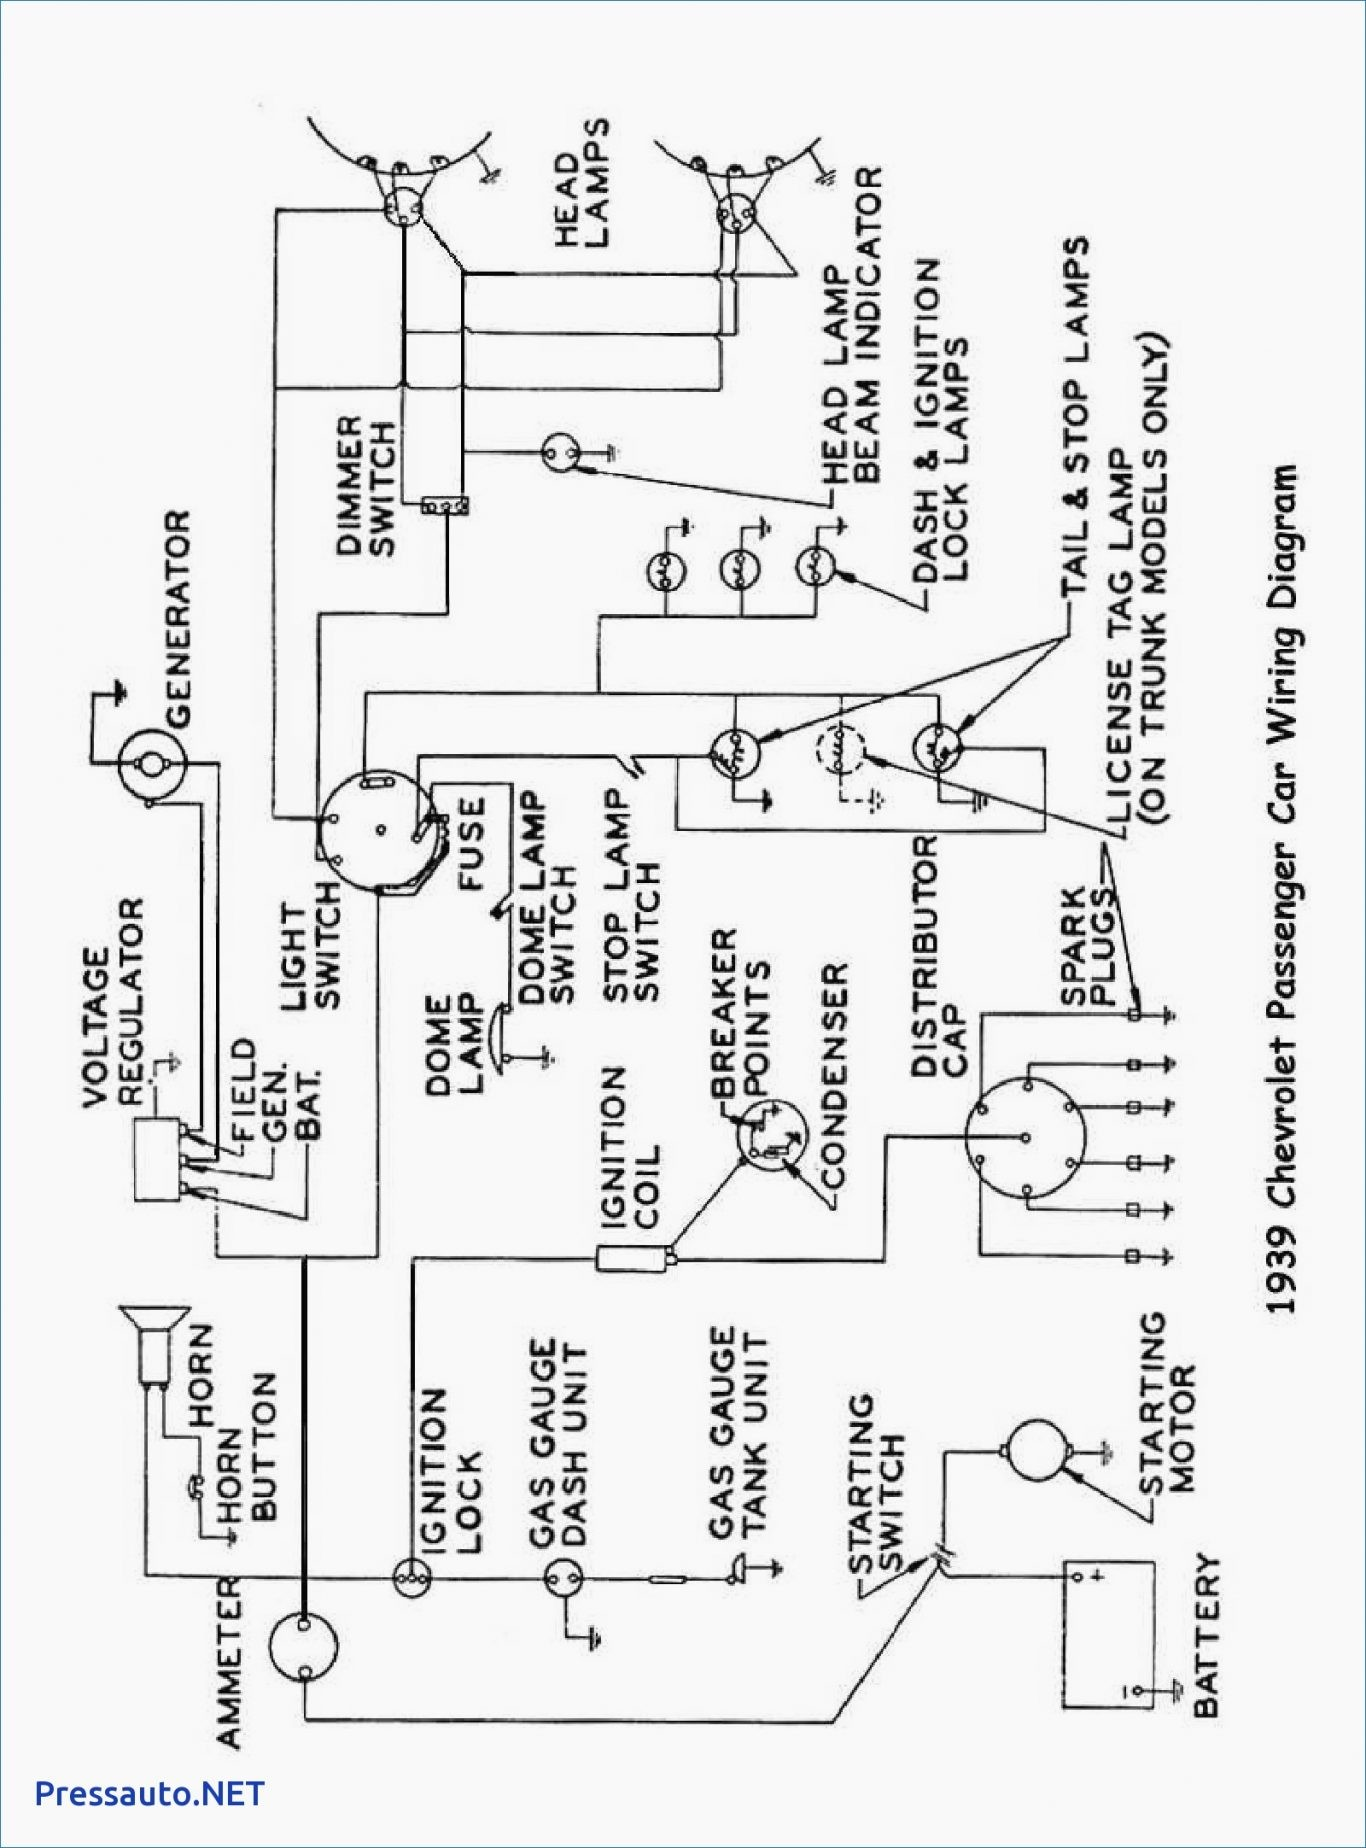 the best free wiring drawing images  download from 50 free